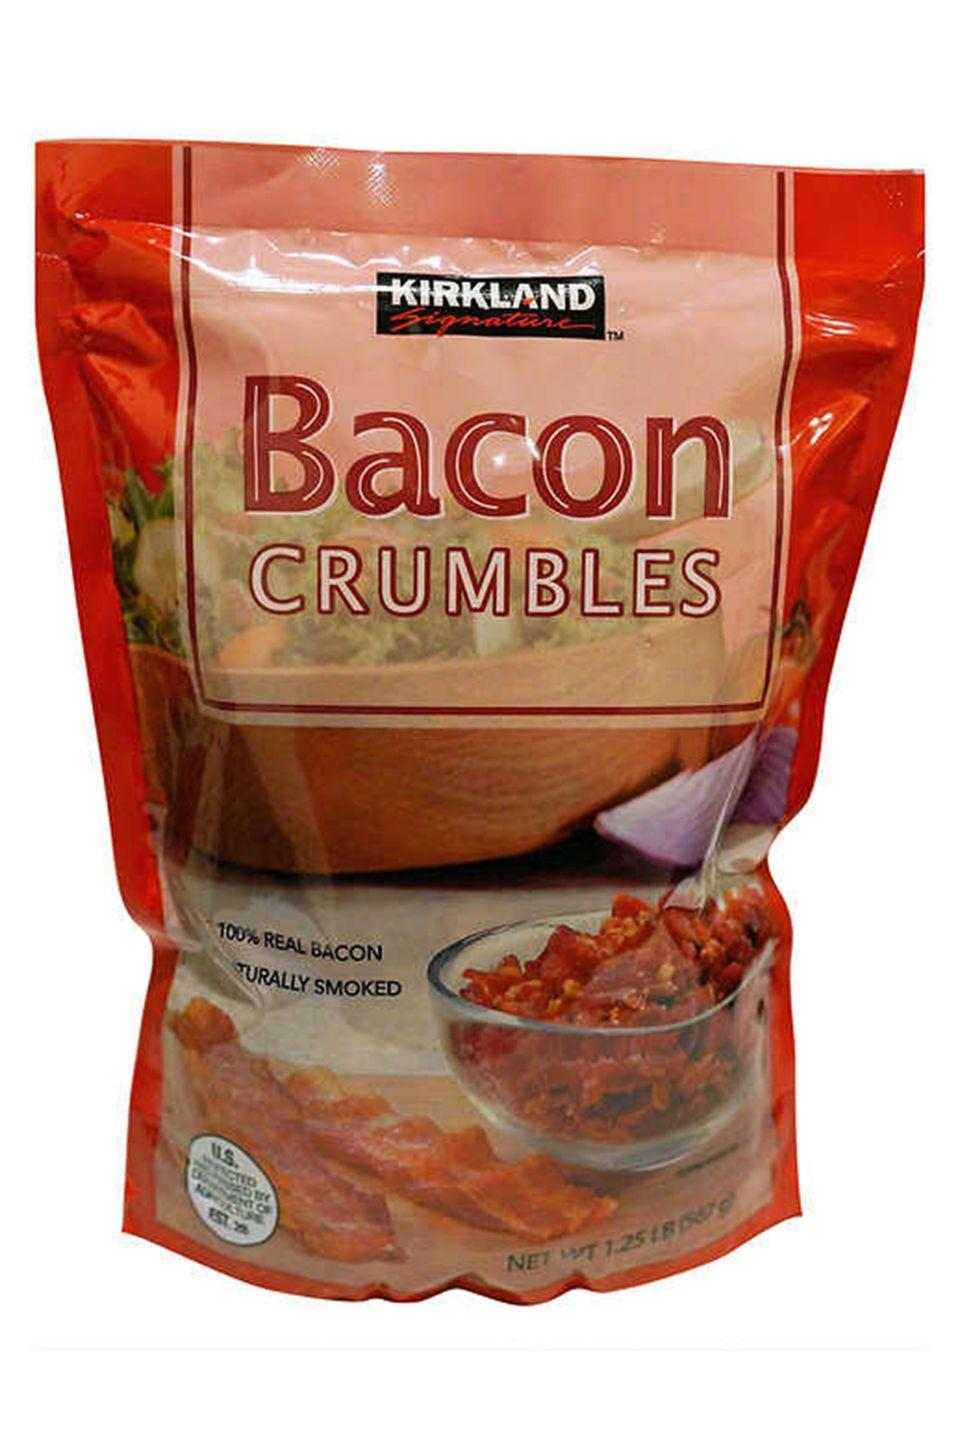 """<p>Sure, that bacon we just talked about is great, but these it-takes-no-effort-to-put-real-bacon-on-ANYTHING <a href=""""https://www.costco.com/Kirkland-Signature-Crumbled-Bacon%2c-20-oz..product.100334421.html"""" rel=""""nofollow noopener"""" target=""""_blank"""" data-ylk=""""slk:bacon crumbles"""" class=""""link rapid-noclick-resp"""">bacon crumbles</a>...</p>"""